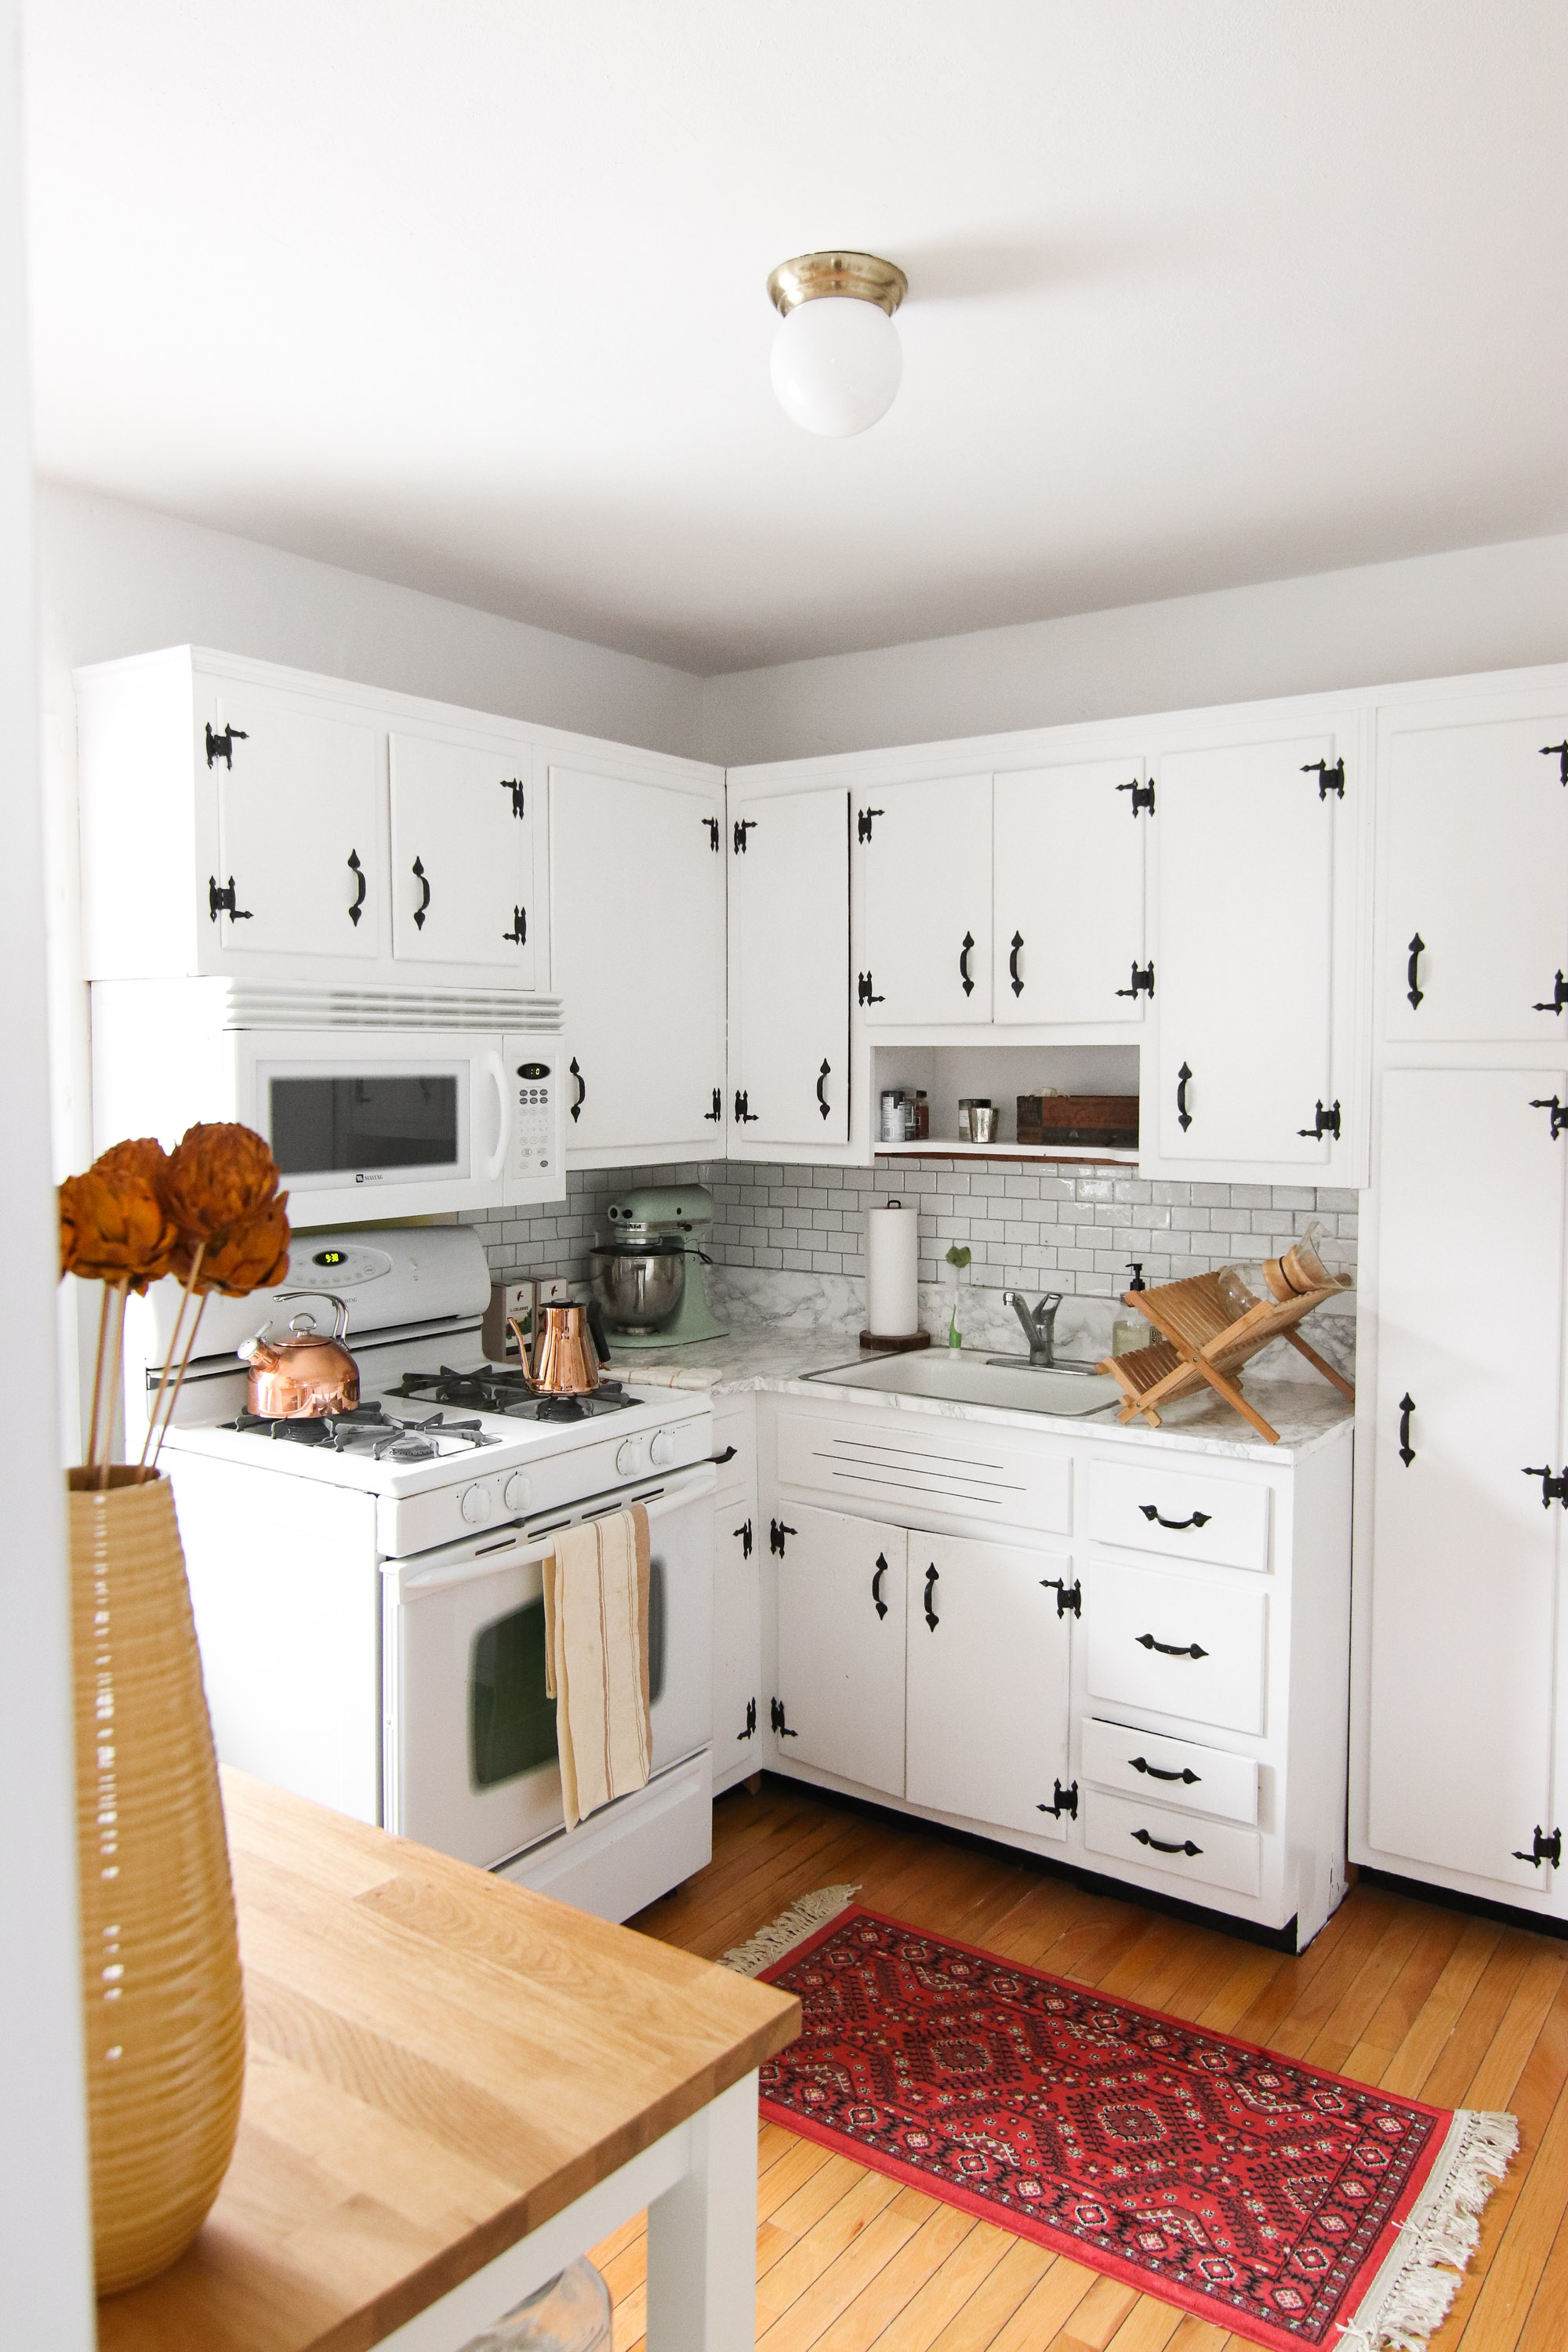 Kitchen Before + After: How I Painted My Kitchen Cabinets White